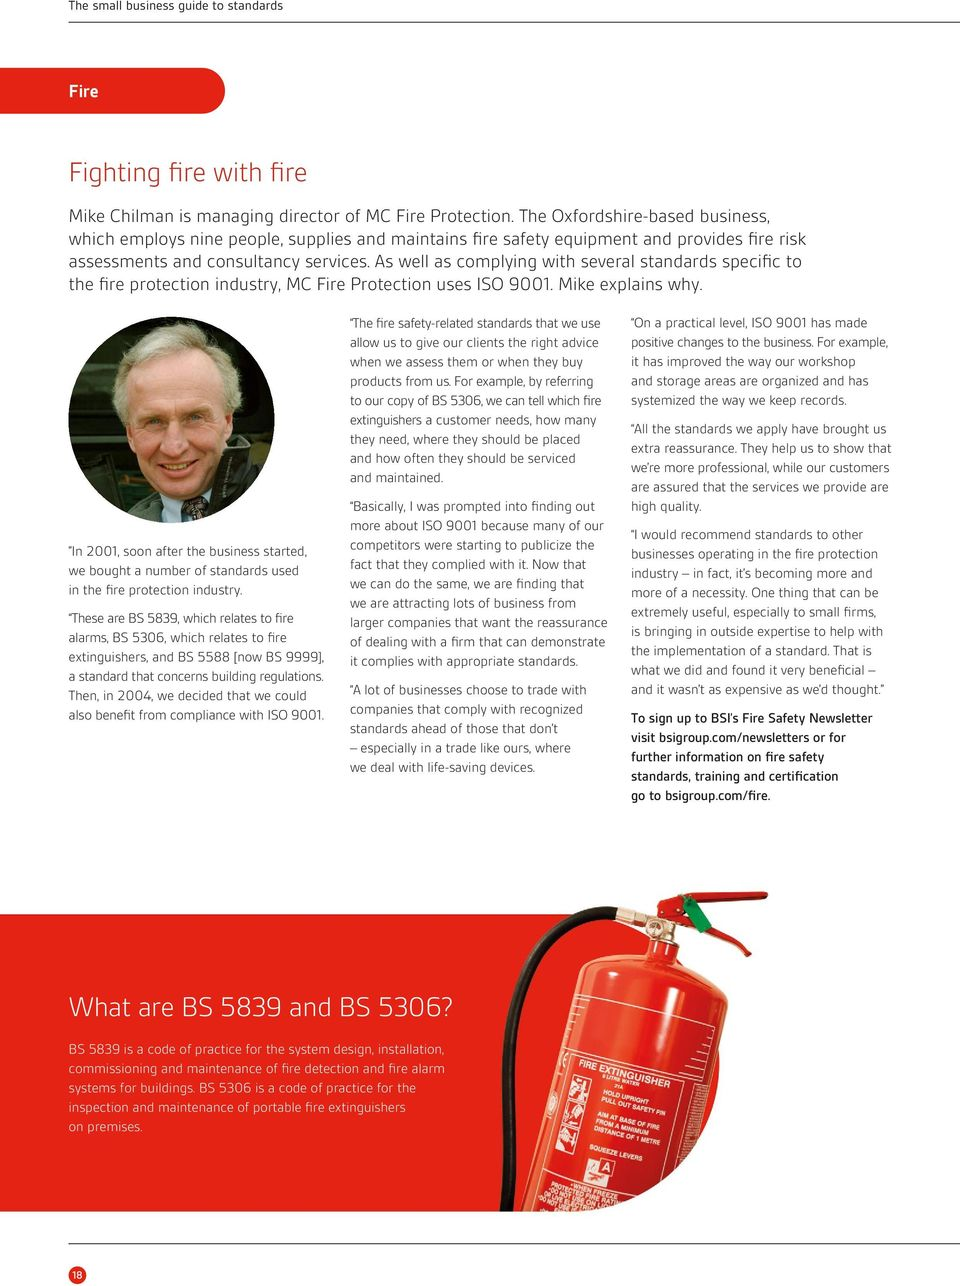 As well as complying with several standards specific to the fire protection industry, MC Fire Protection uses ISO 9001. Mike explains why.